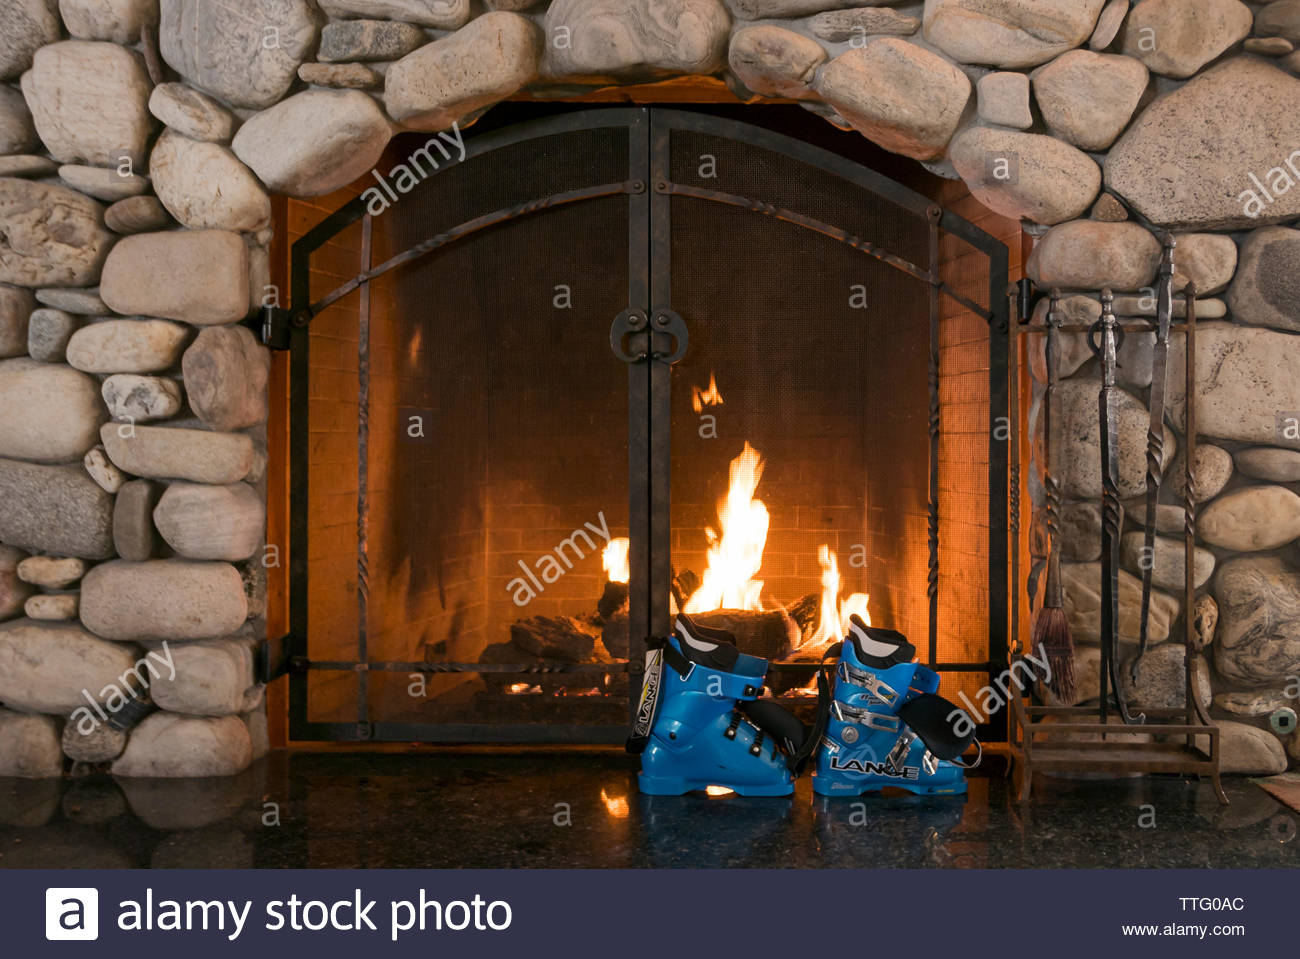 Ski boots warm and dry by the fire in the lodge at Sun Valley, Idaho. - Stock Image